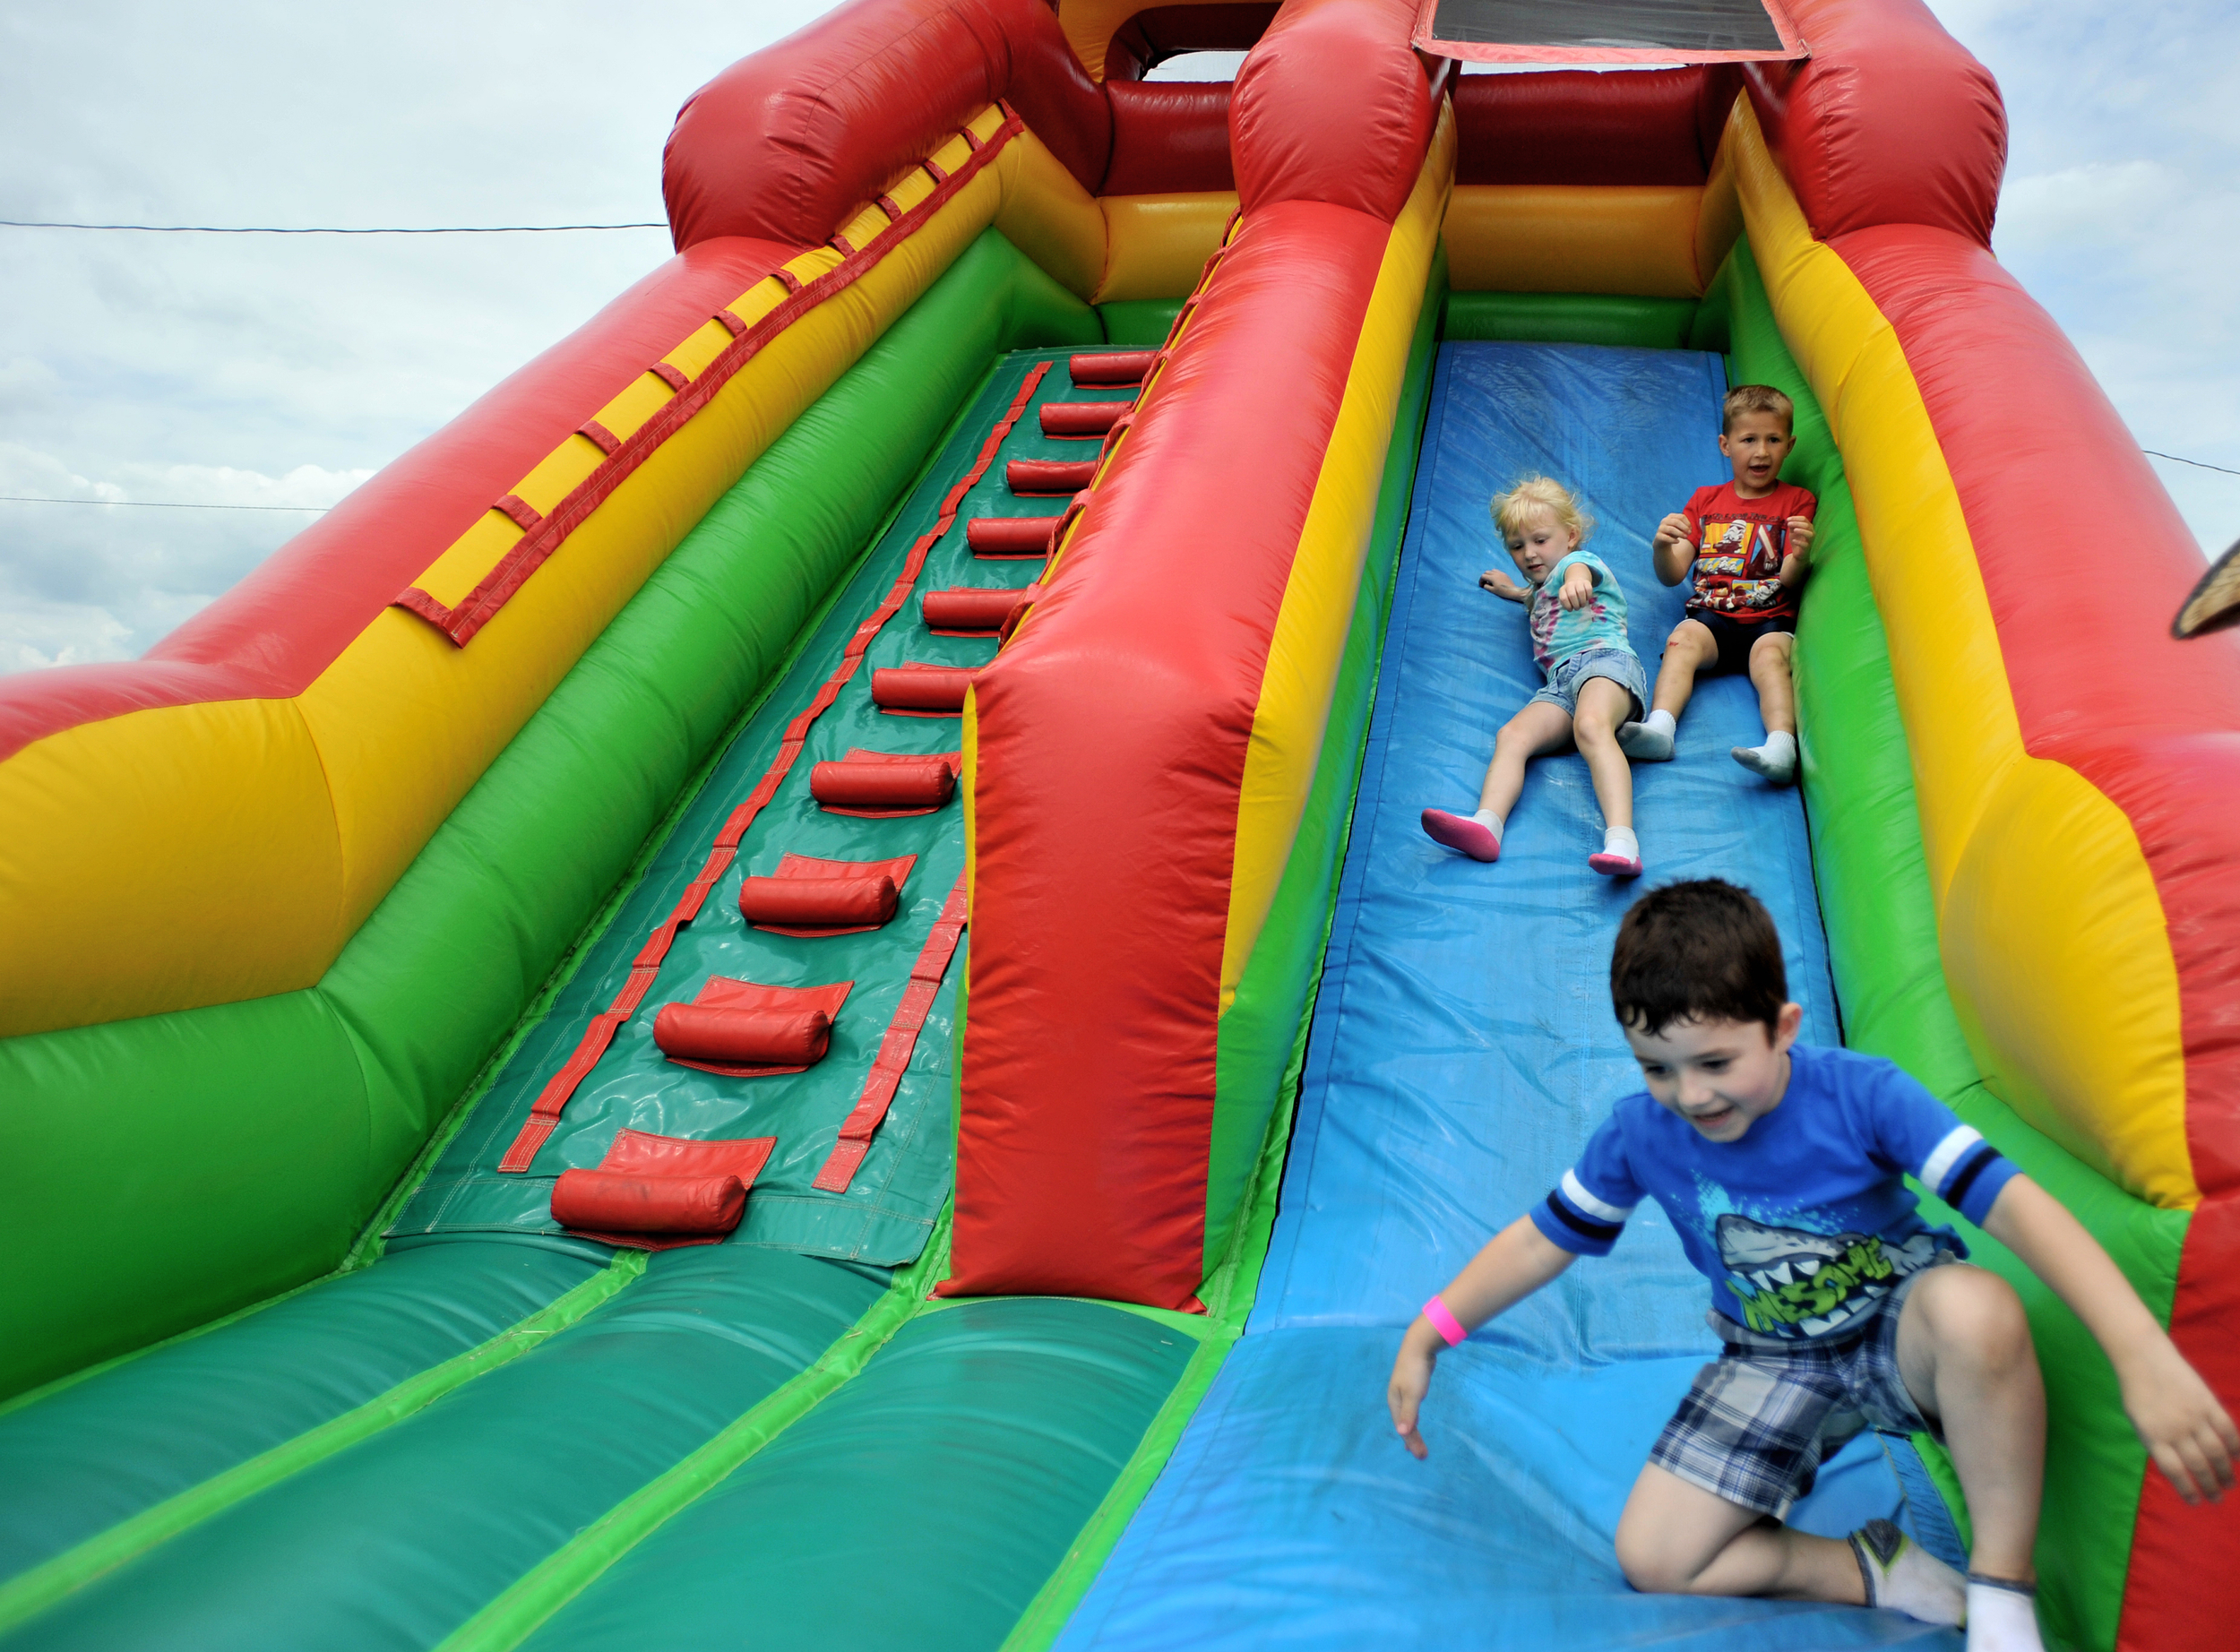 Daniel Gamble, 4, of McKeansburg, PA, slides down an inflatable slide at the Kutztown Folk Festival in Kutztown, PA, on July 4, 2016. Katie Repscher, 5, and her brother Benjamin, 7, of Bethlehem, follow closely behind. (Reading Eagle: Sarah Stier)